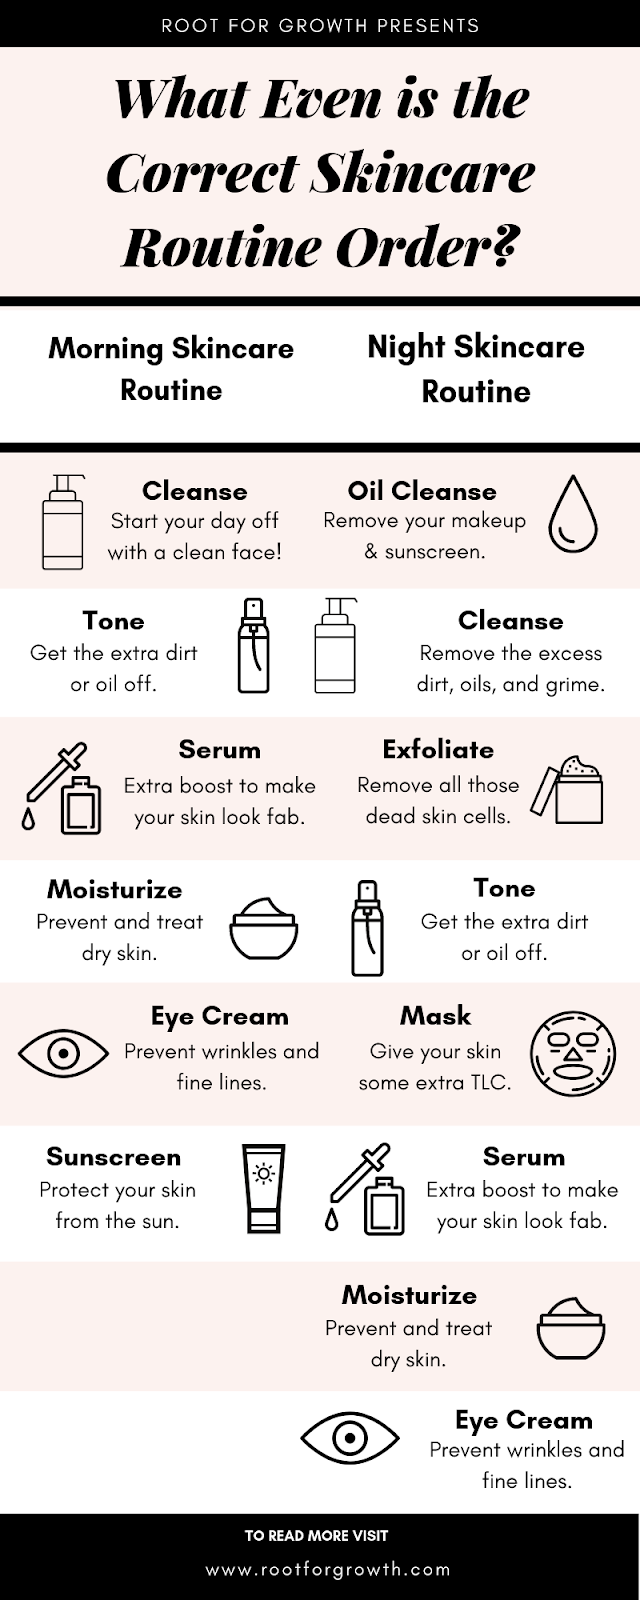 Includes nighttime skincare routine order for 20s, 30s, 40s, for dry and oily skin. Has both day and night skincare routine steps.